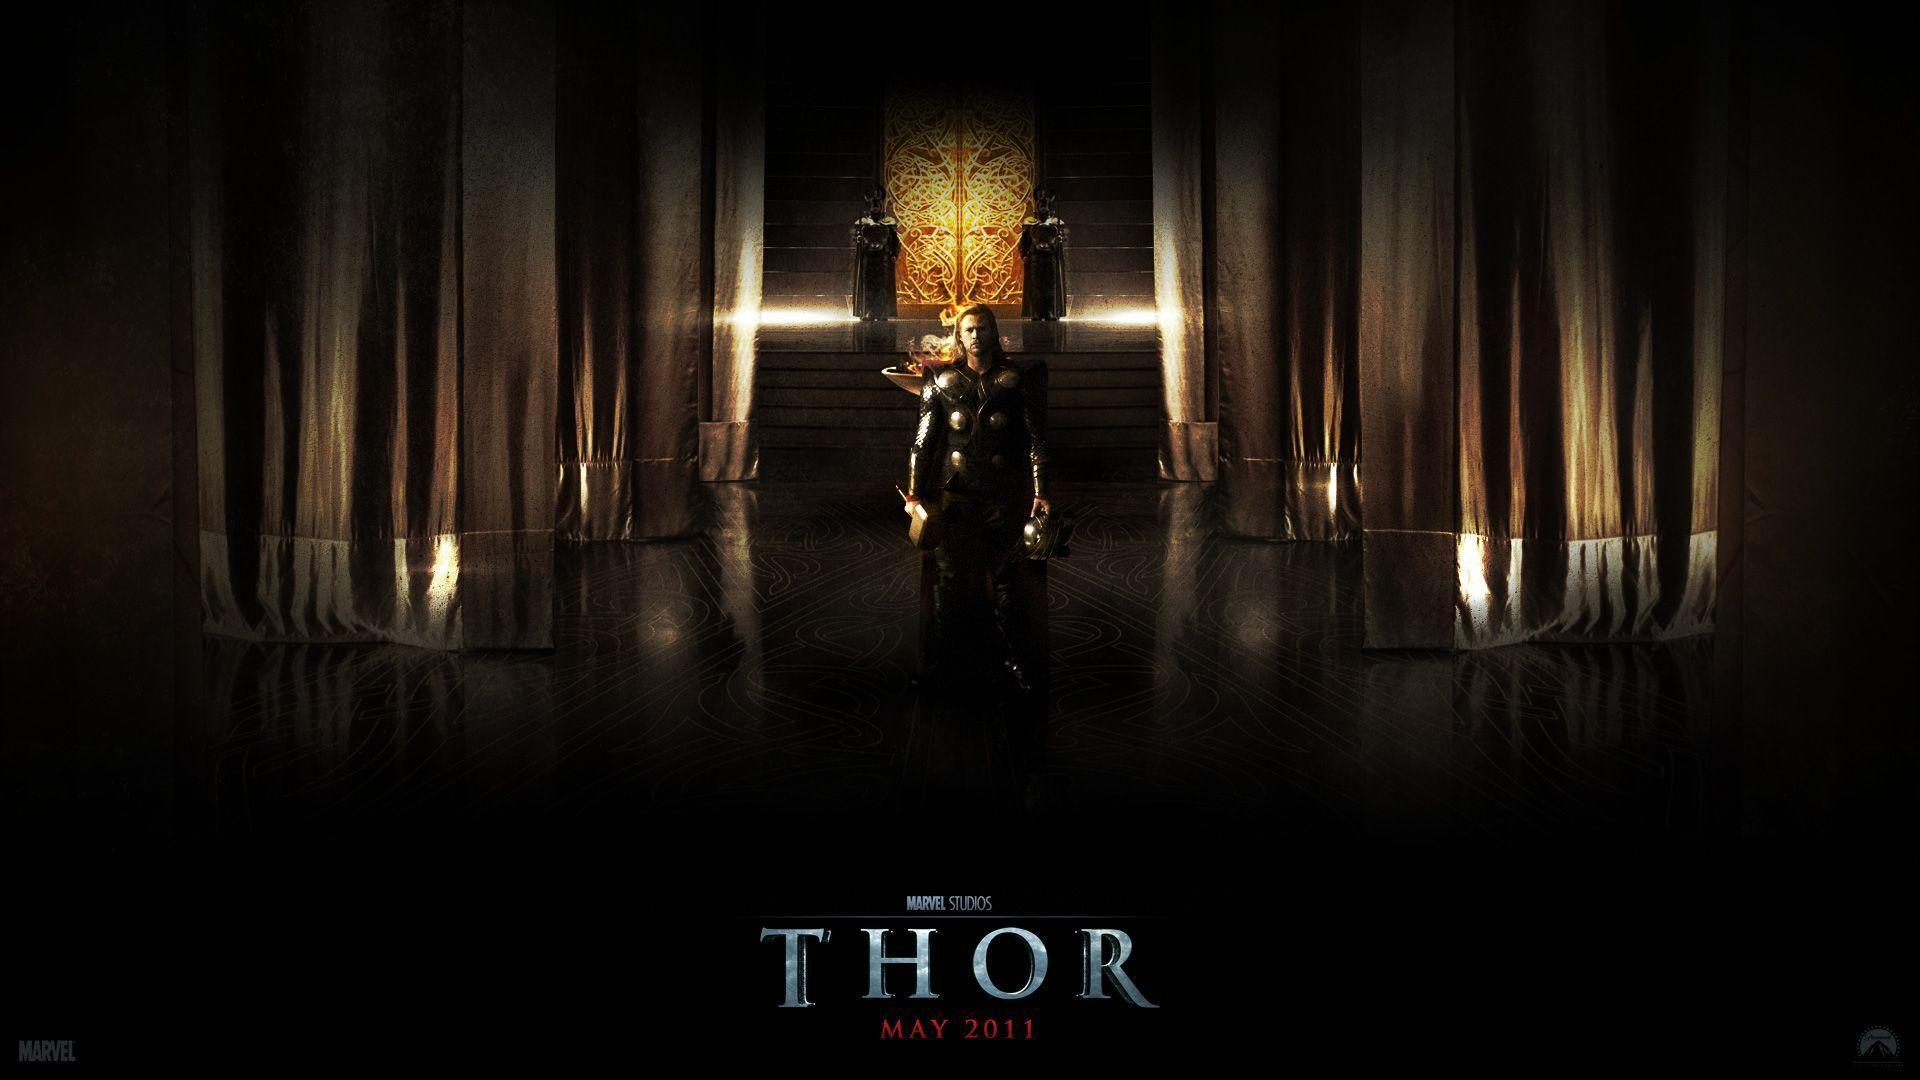 Wallpapers For > Thor 2 Wallpapers 1920x1080